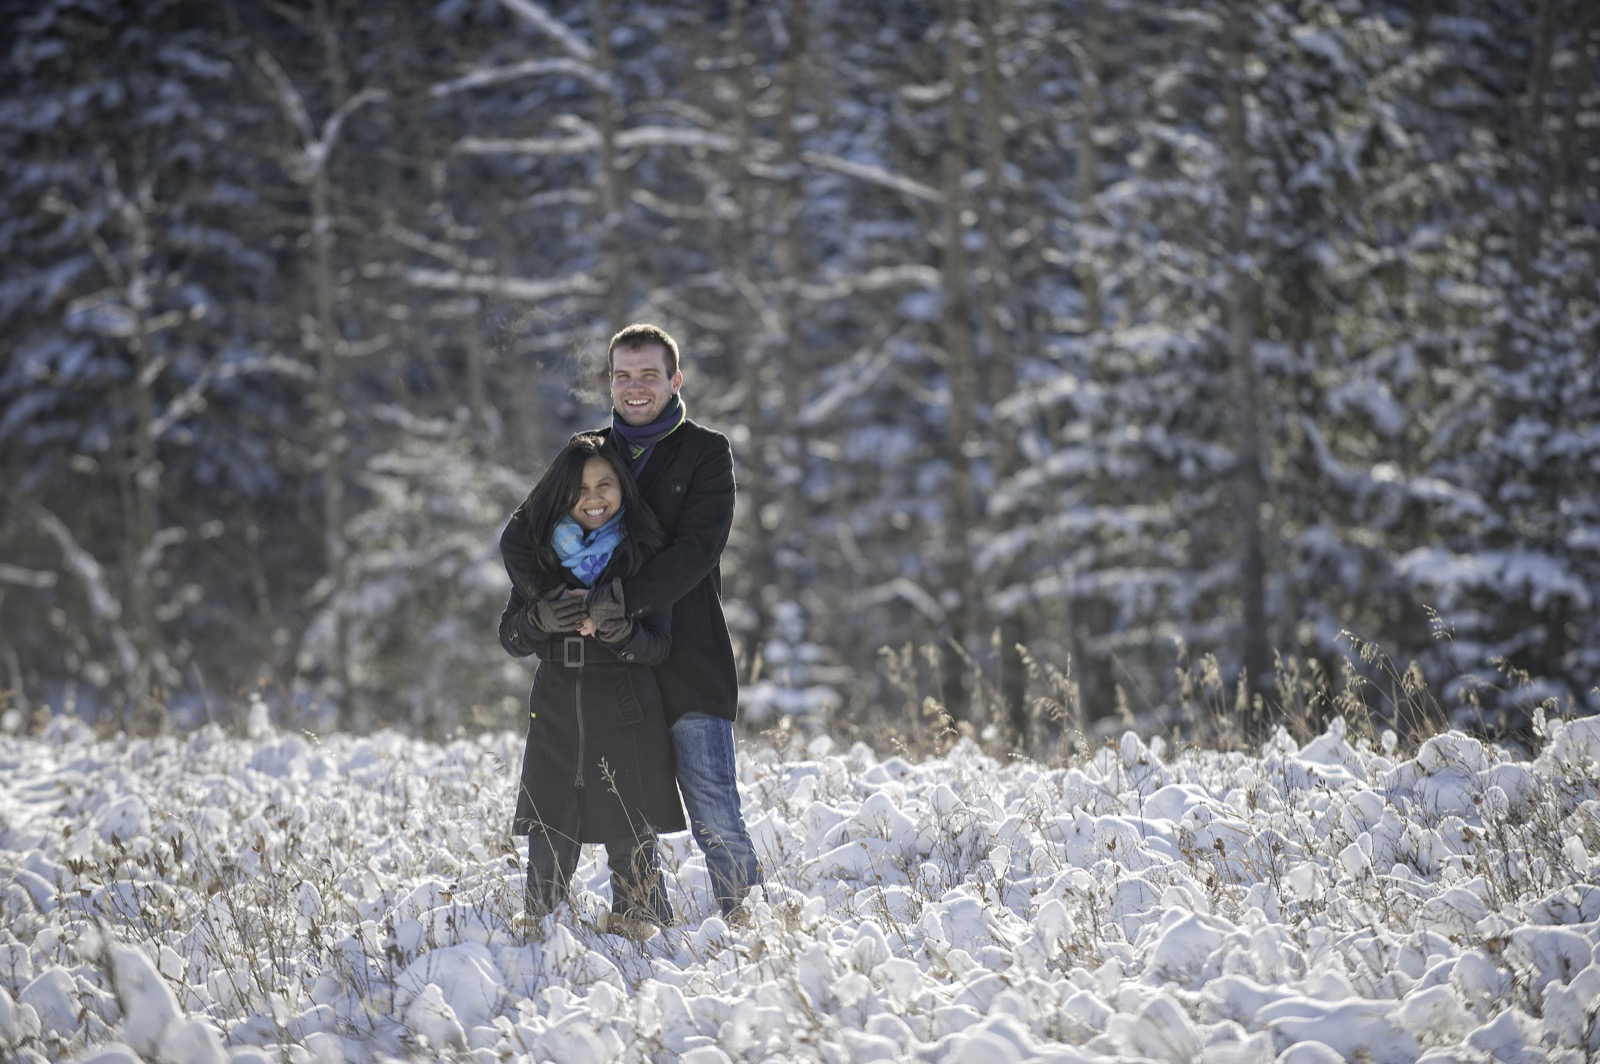 victoria-wedding-photographers-calgary-winter-engagement-proposal-09.jpg